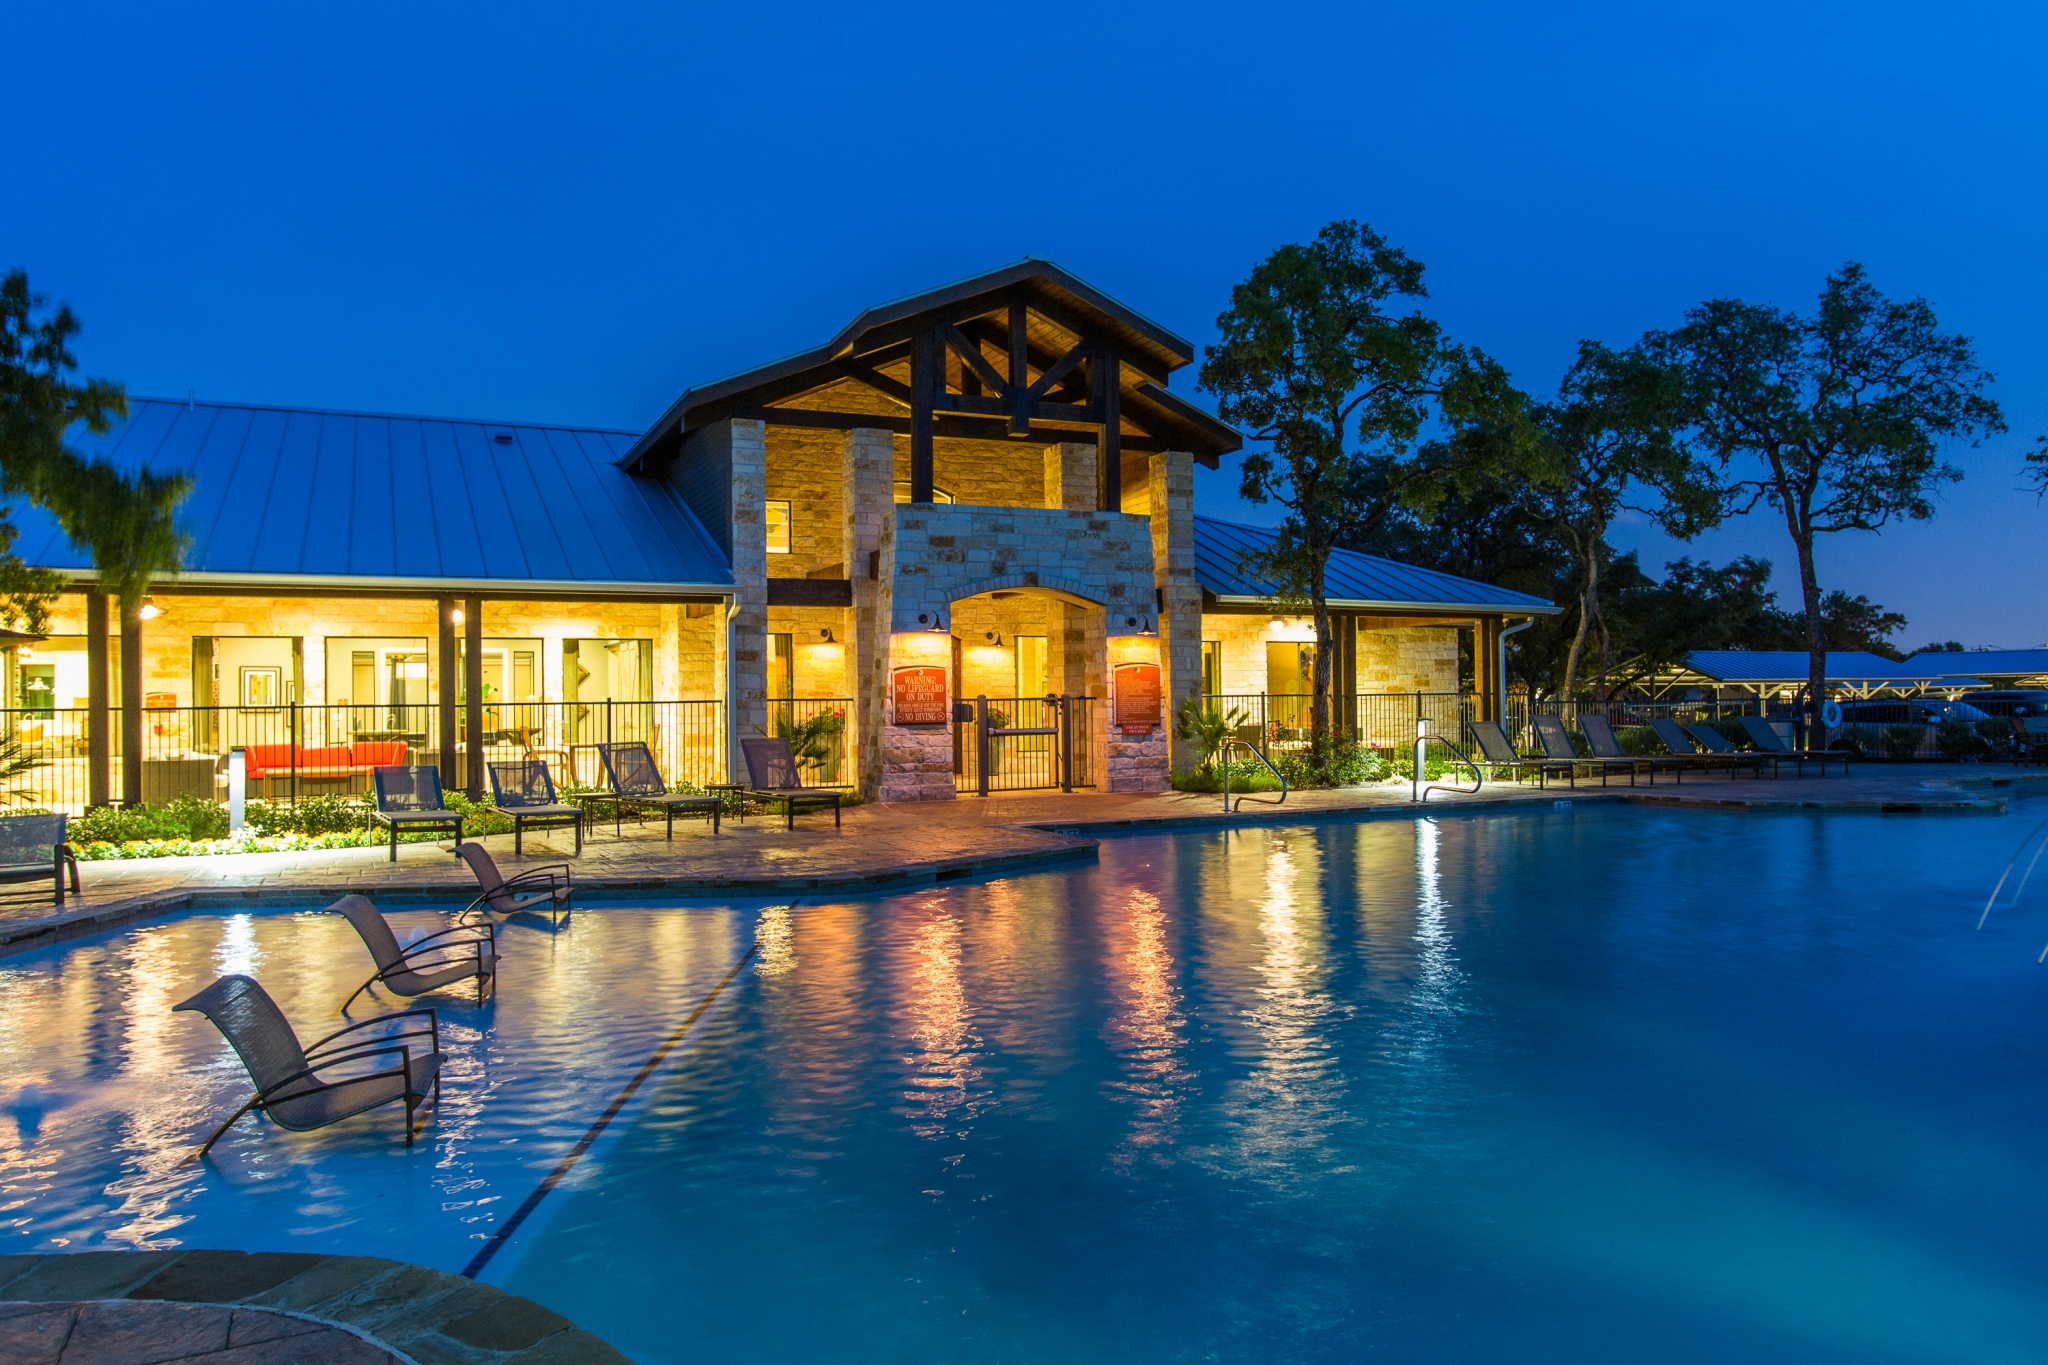 Evening Pool with back lit Clubhouse